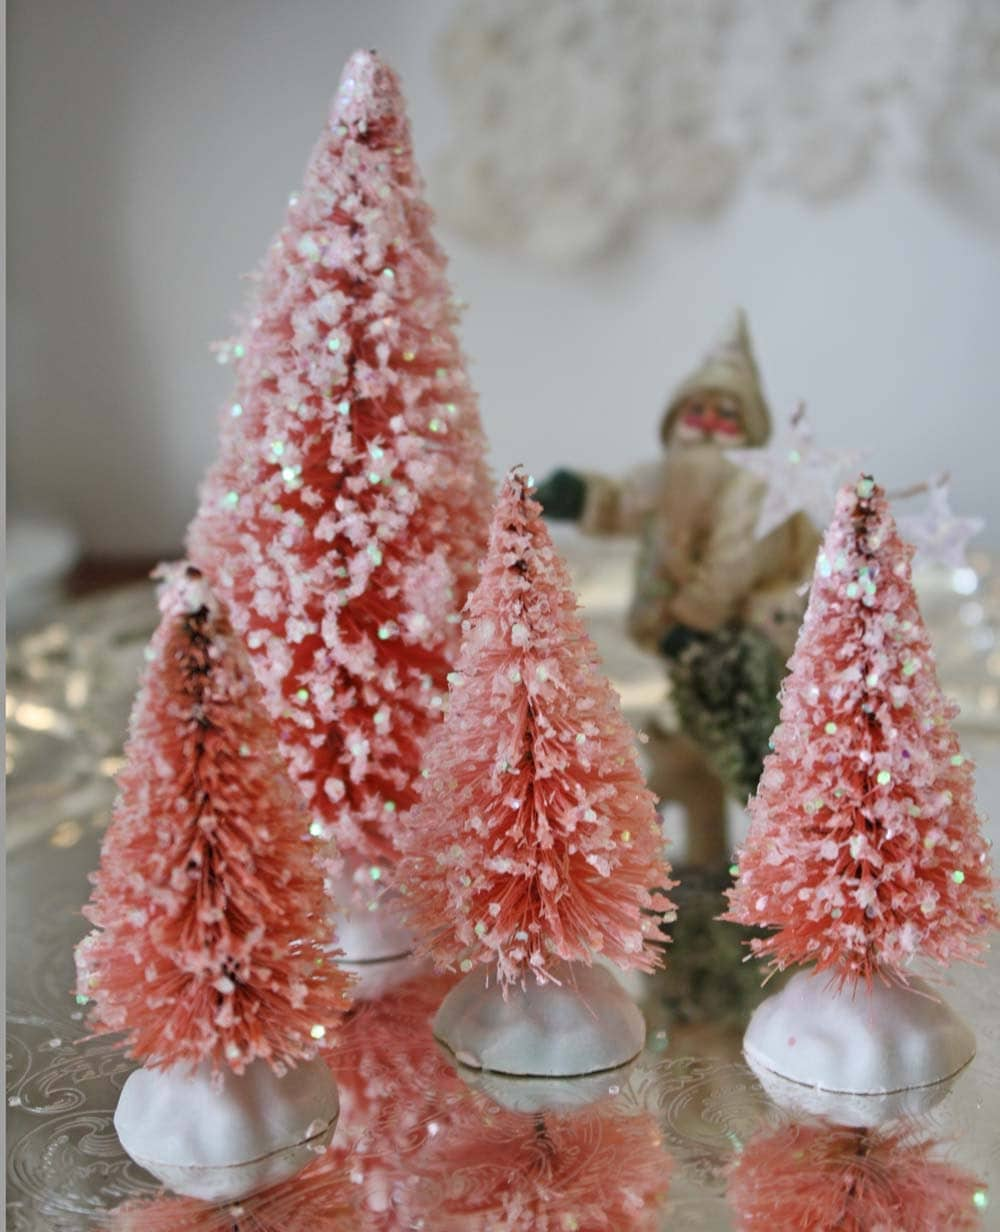 Bottle Brush Tree Set: 4 Pink Glitter Bottle Brush Trees